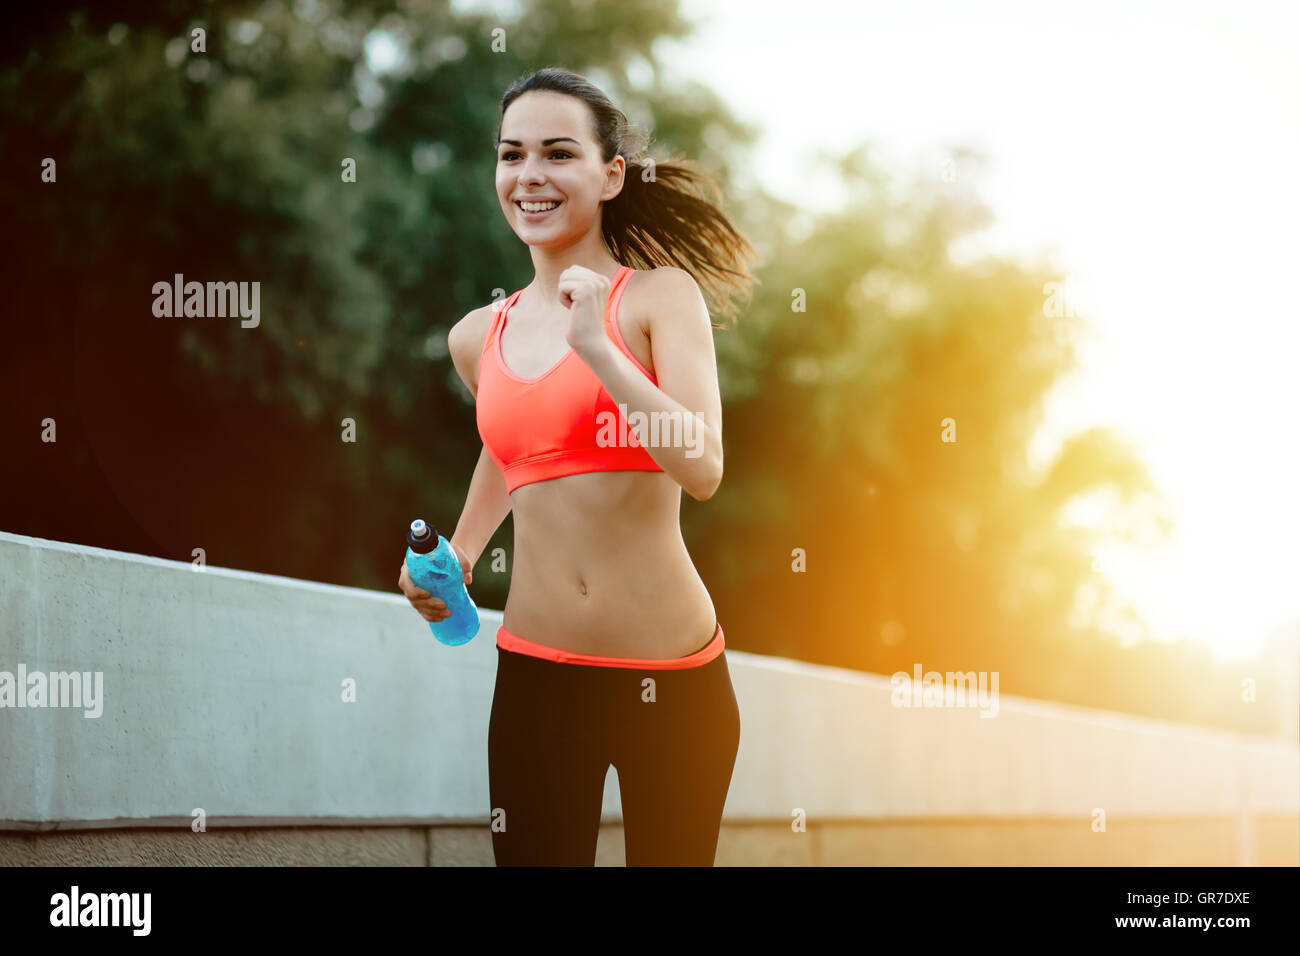 Sporty jogger going for a run in urban city area - Stock Image